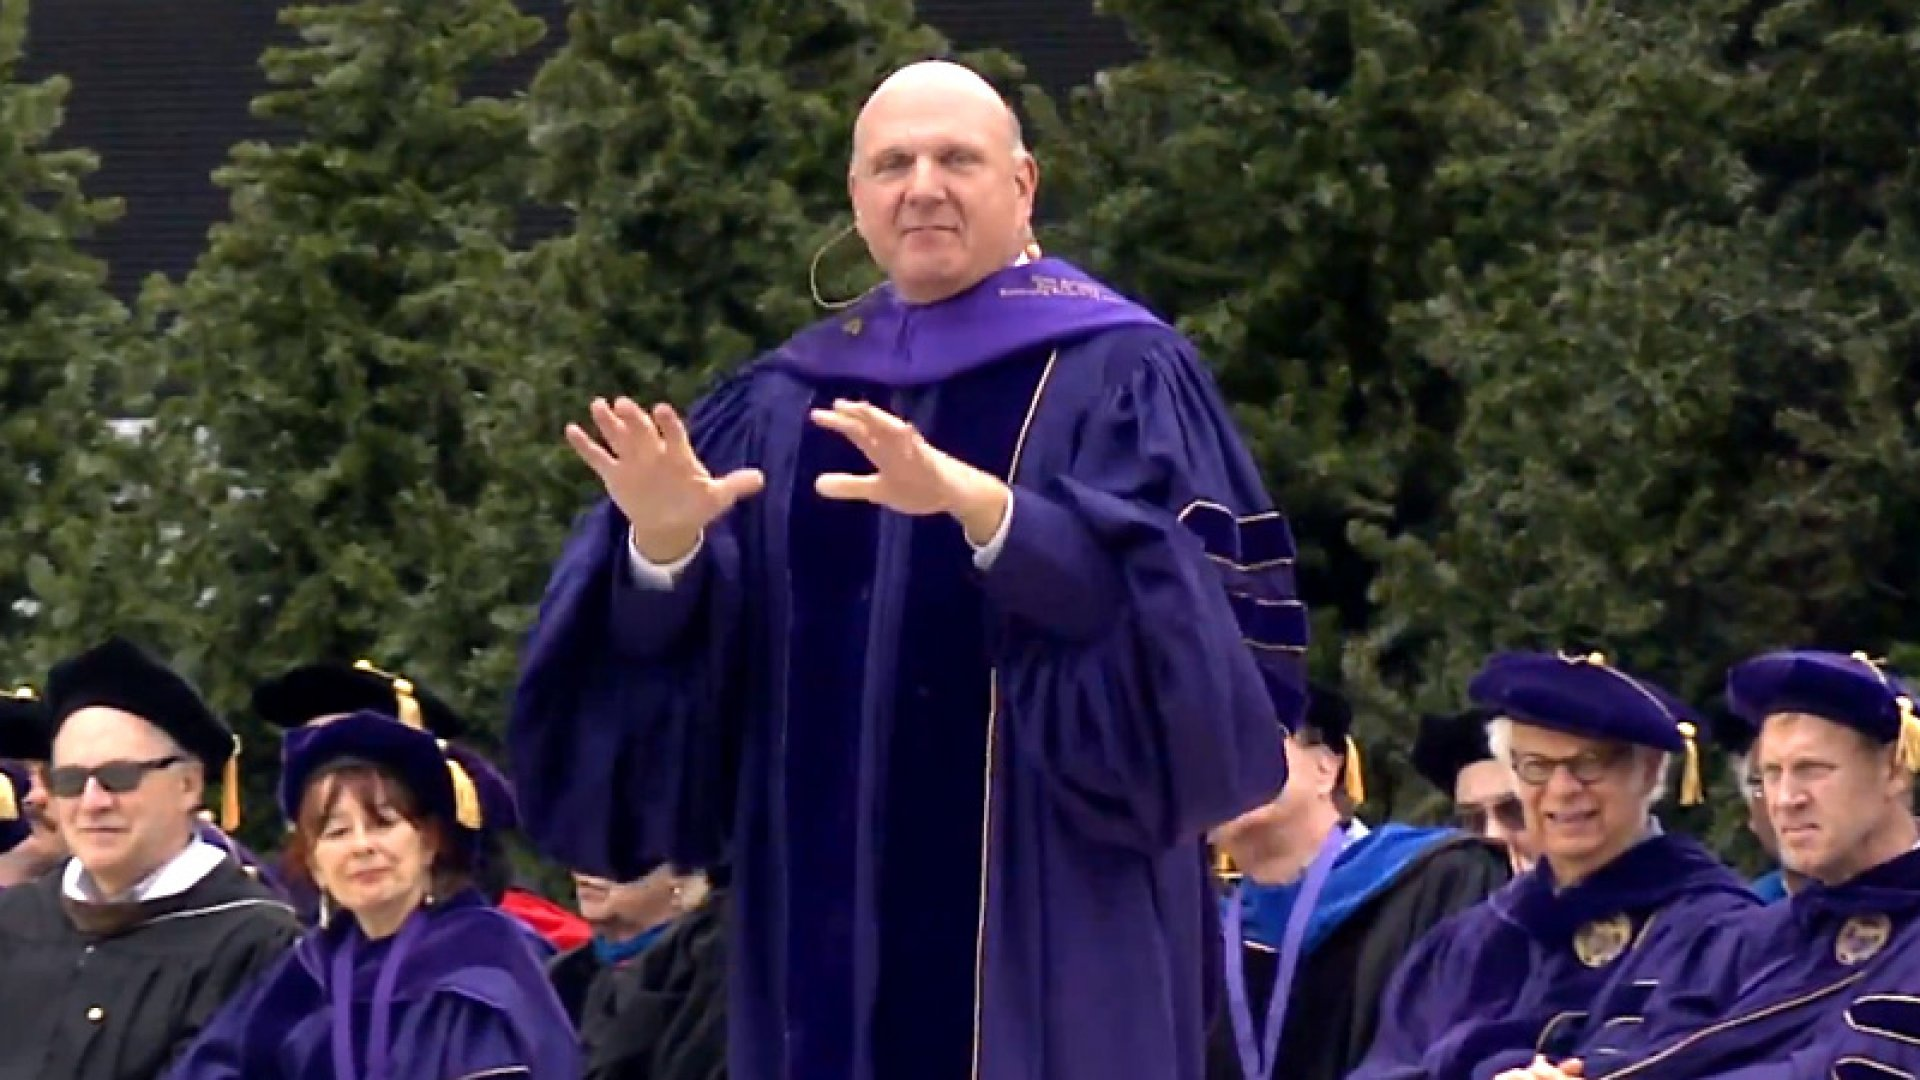 Steve Ballmer to New Grads: 'I, Too, Don't Know What I'm Doing'